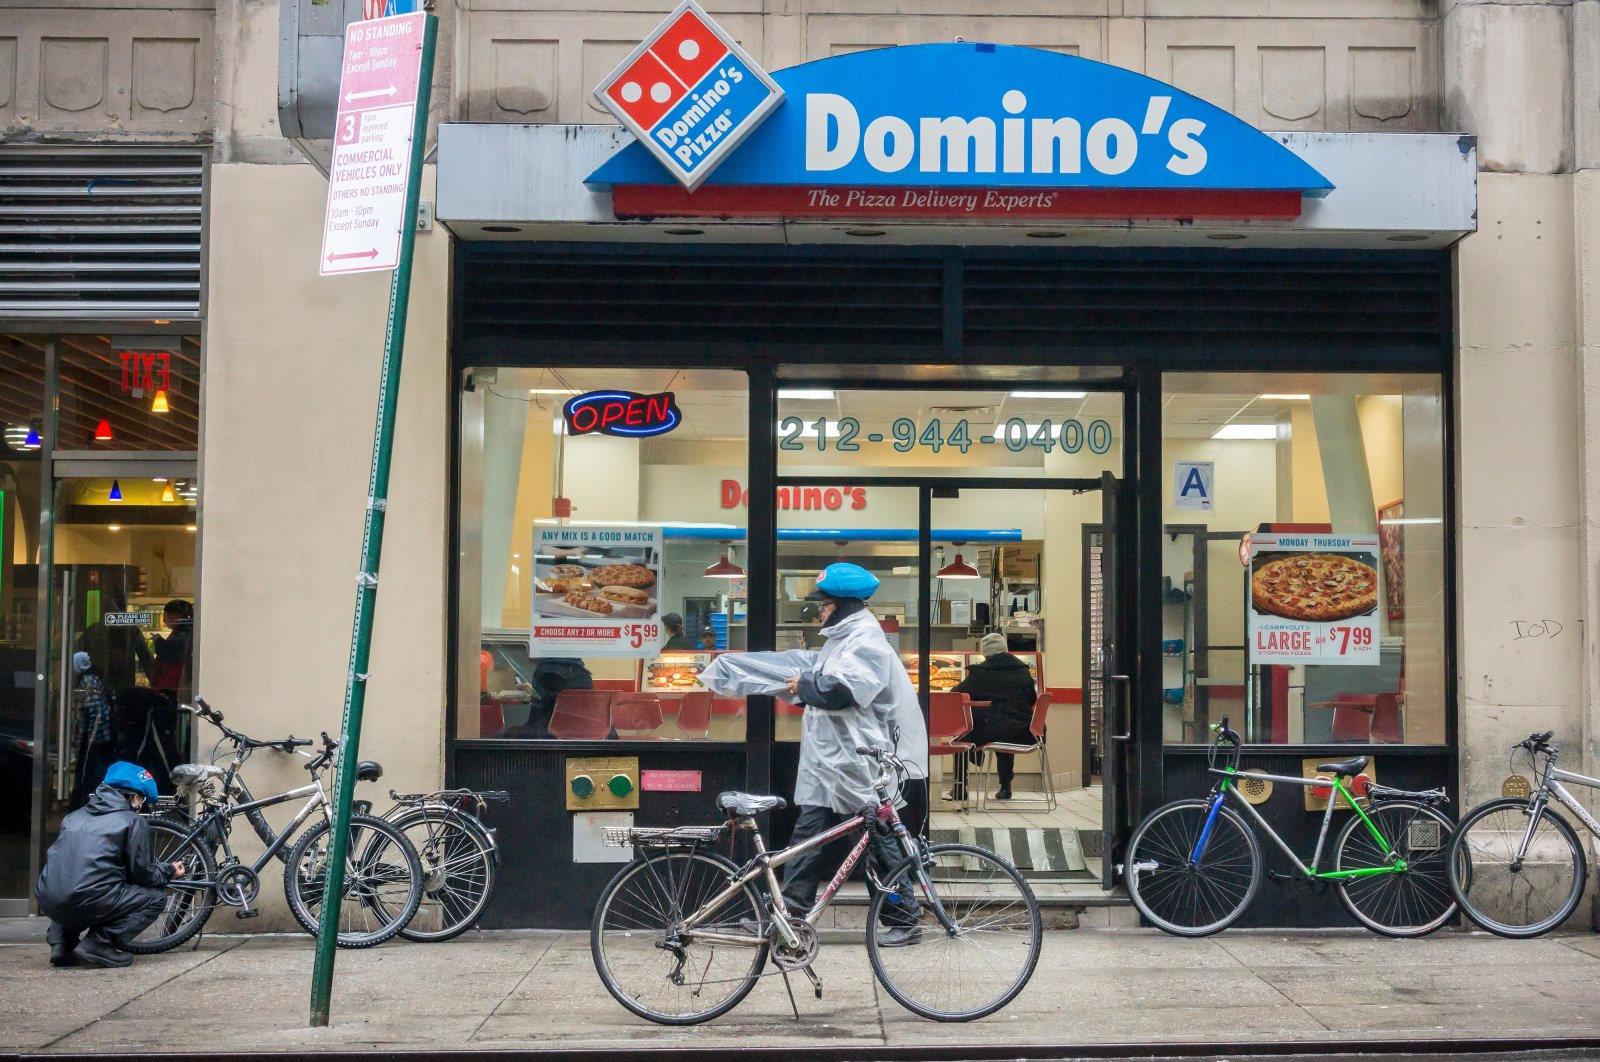 A franchise of the popular Domino's Pizza chain in New York City, U.S., March 14, 2015. (Shutterstock Photo)